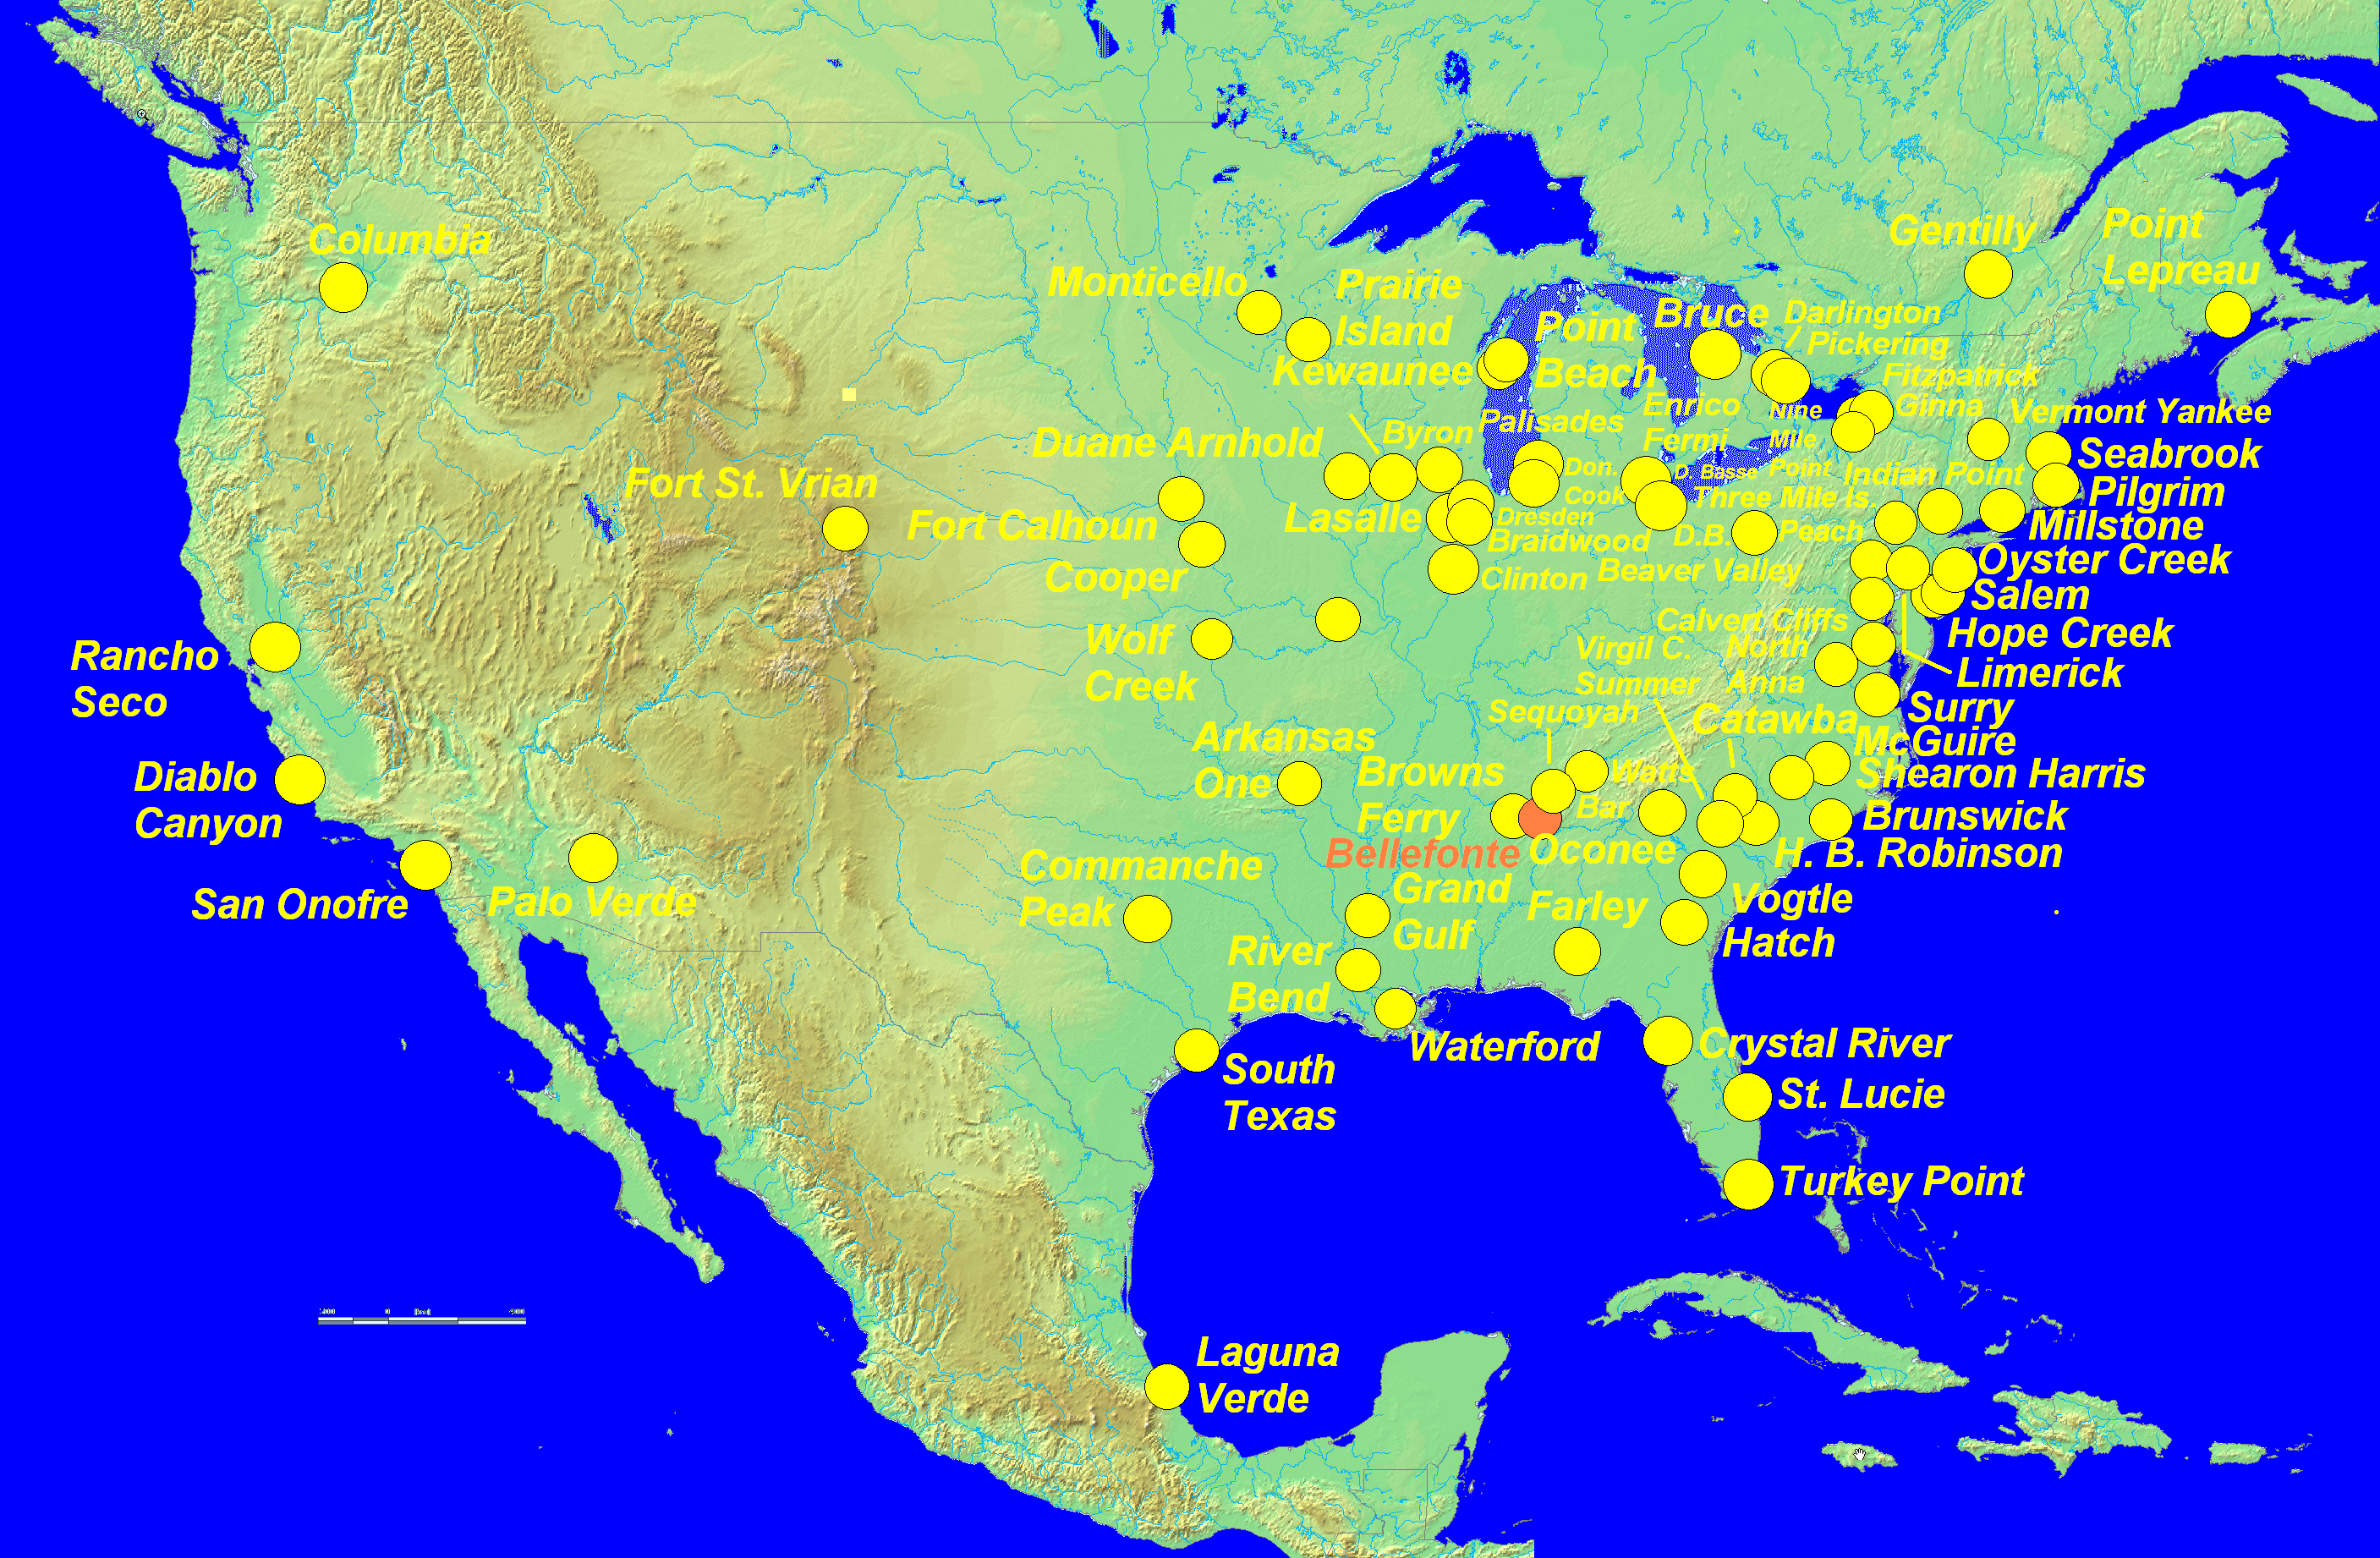 FileMap Of Nuclear Plants US Png Wikimedia Commons - Nuclear power plants us map